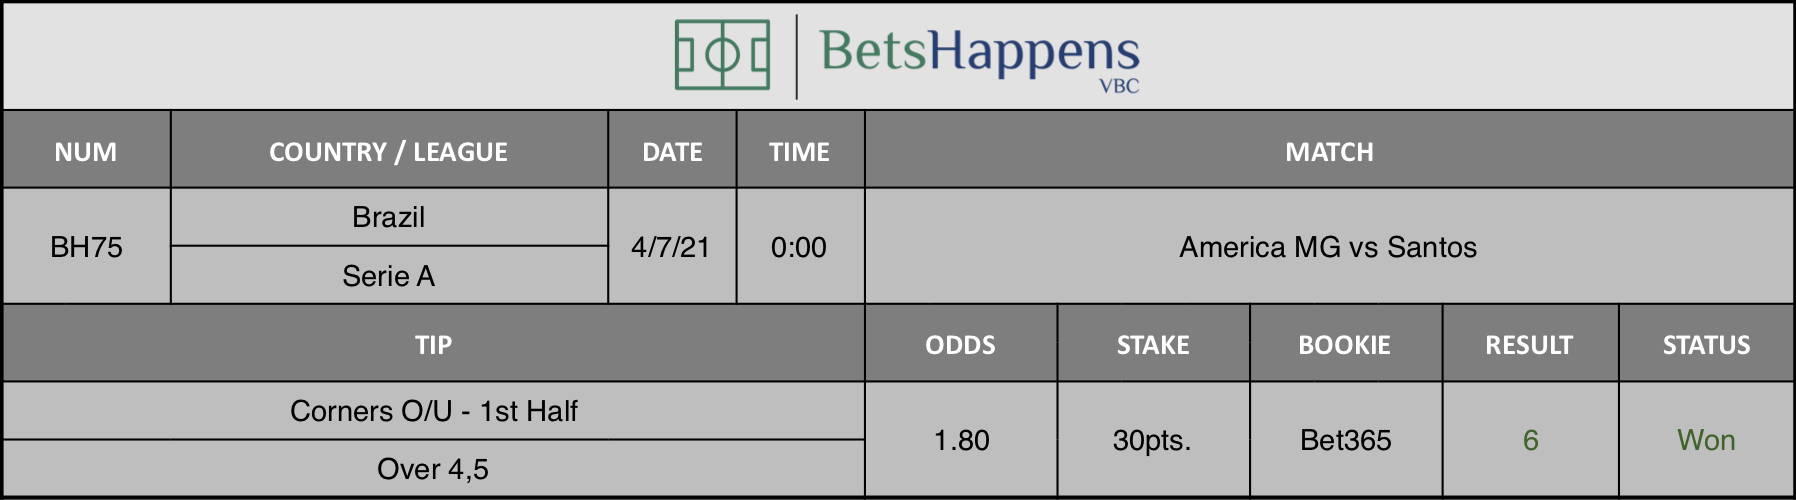 Results of our tip for the America MG vs Santos match. Corners O/U - 1st Half  Over 4,5 is recommended.